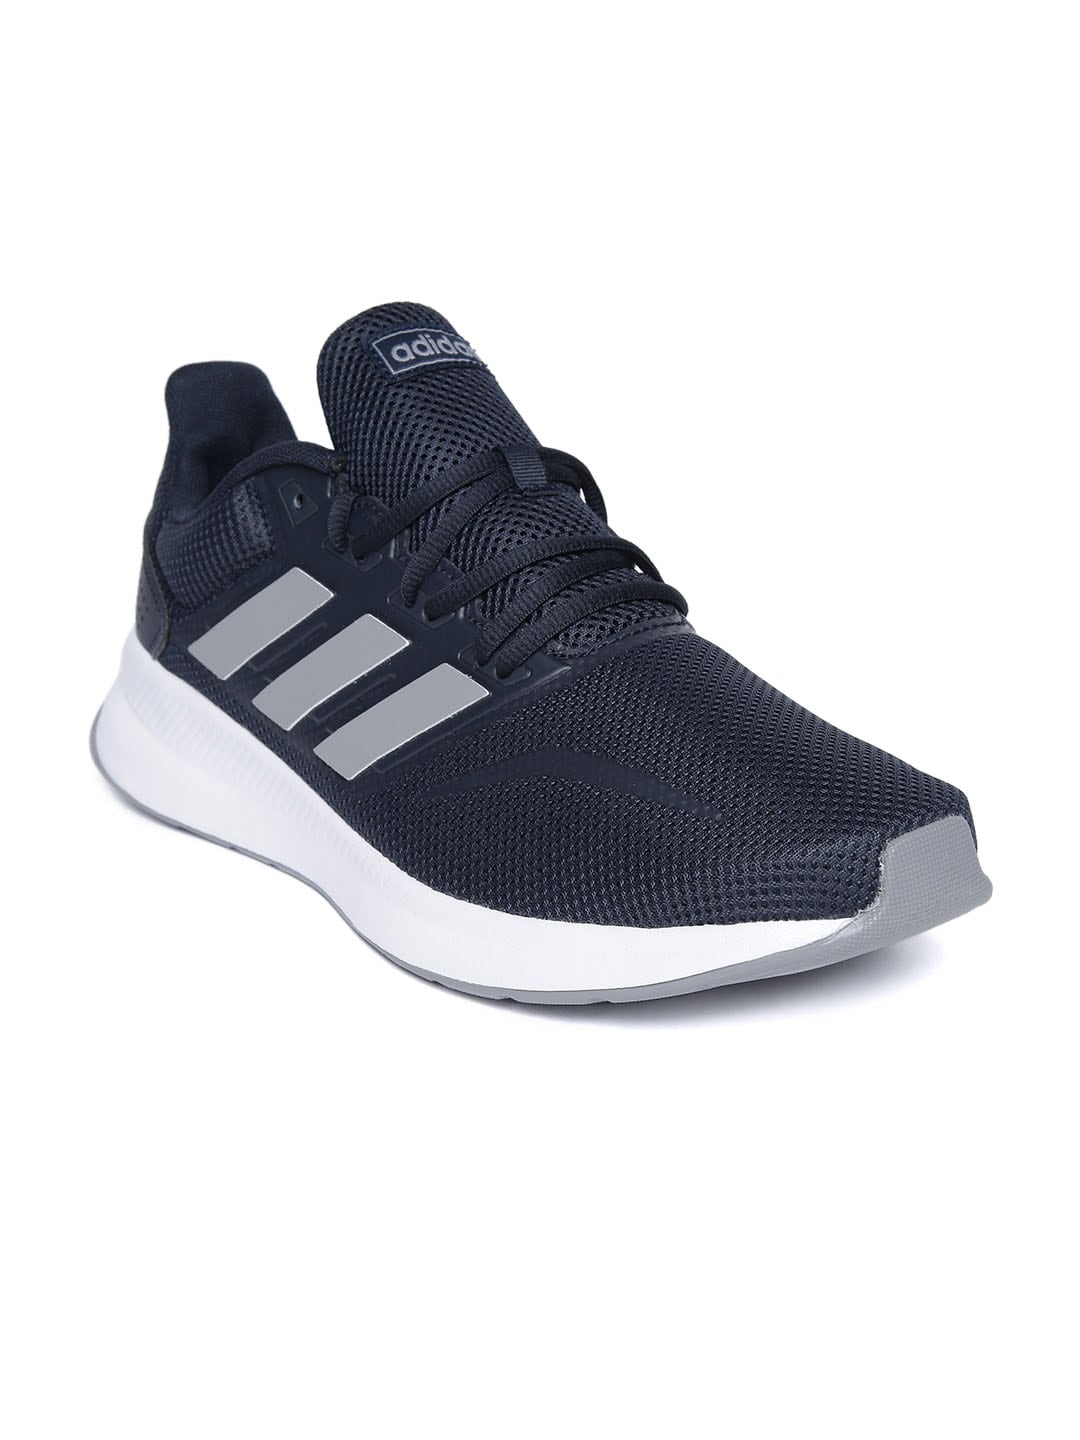 brand new aa8f9 c1372 Adidas Basketball Shoes   Buy Adidas Basketball Shoes Online in India at  Best Price